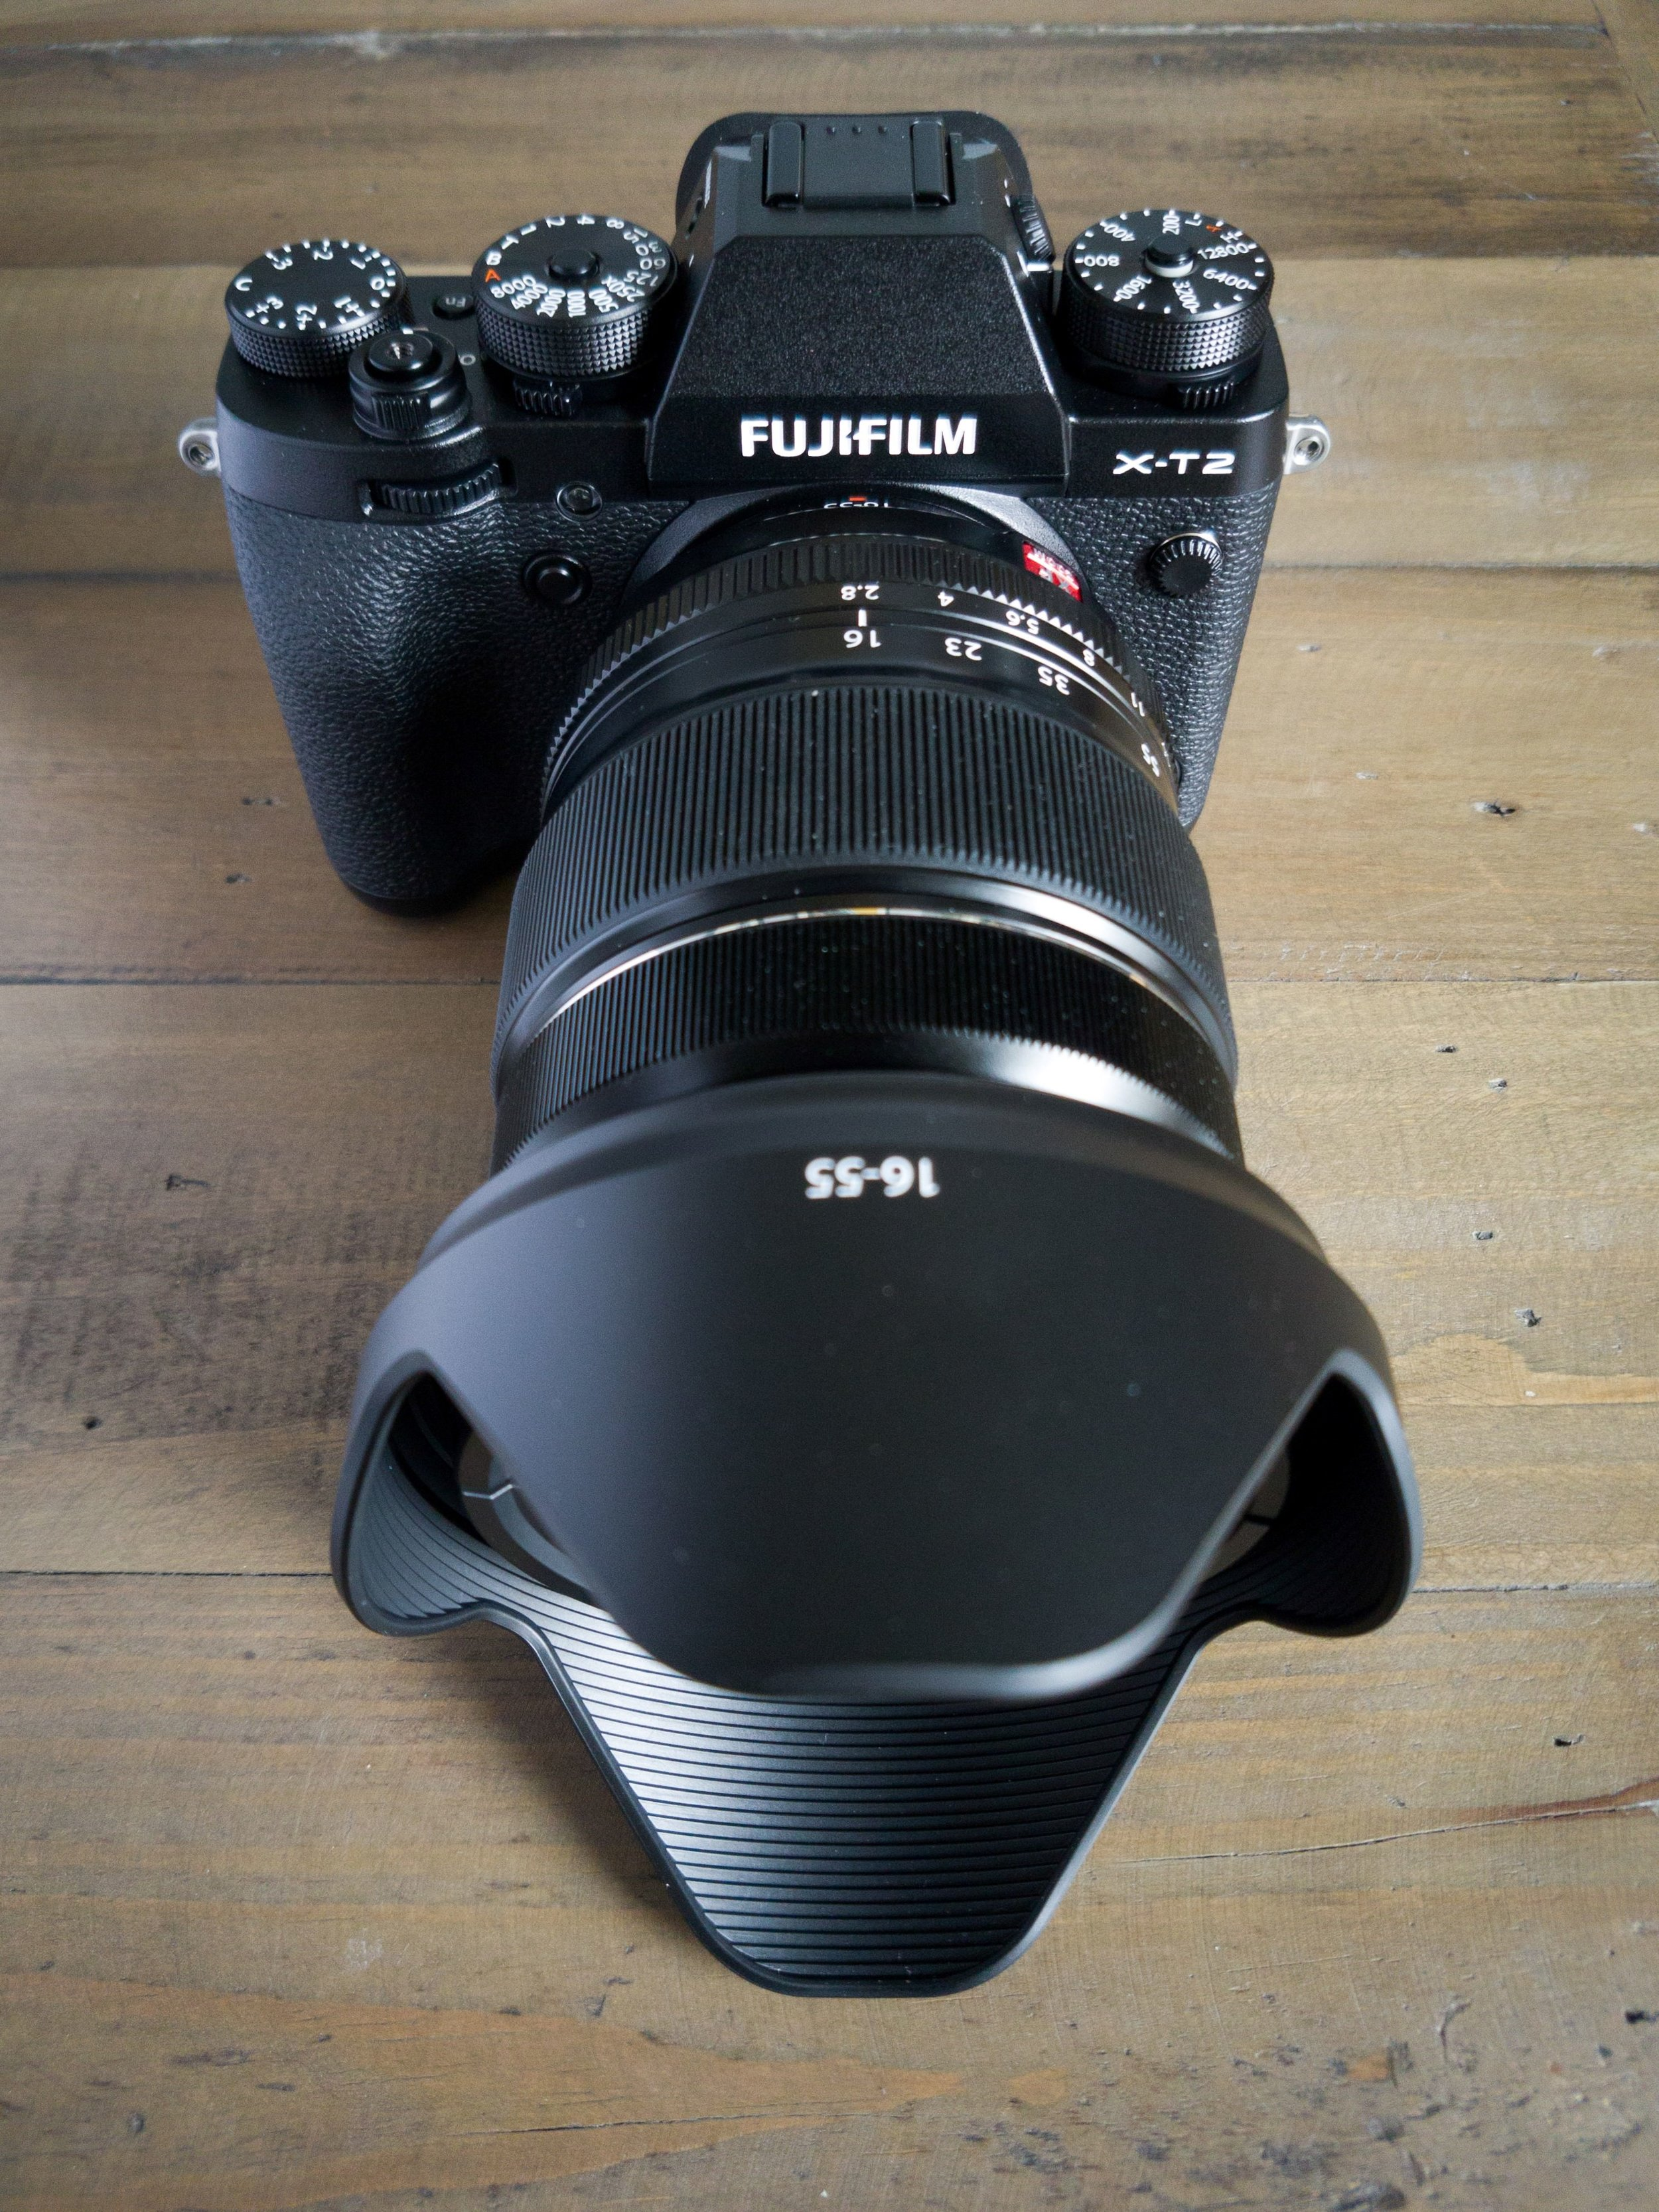 One of my most significant camera purchases of recent years - the Fuji X-T2.